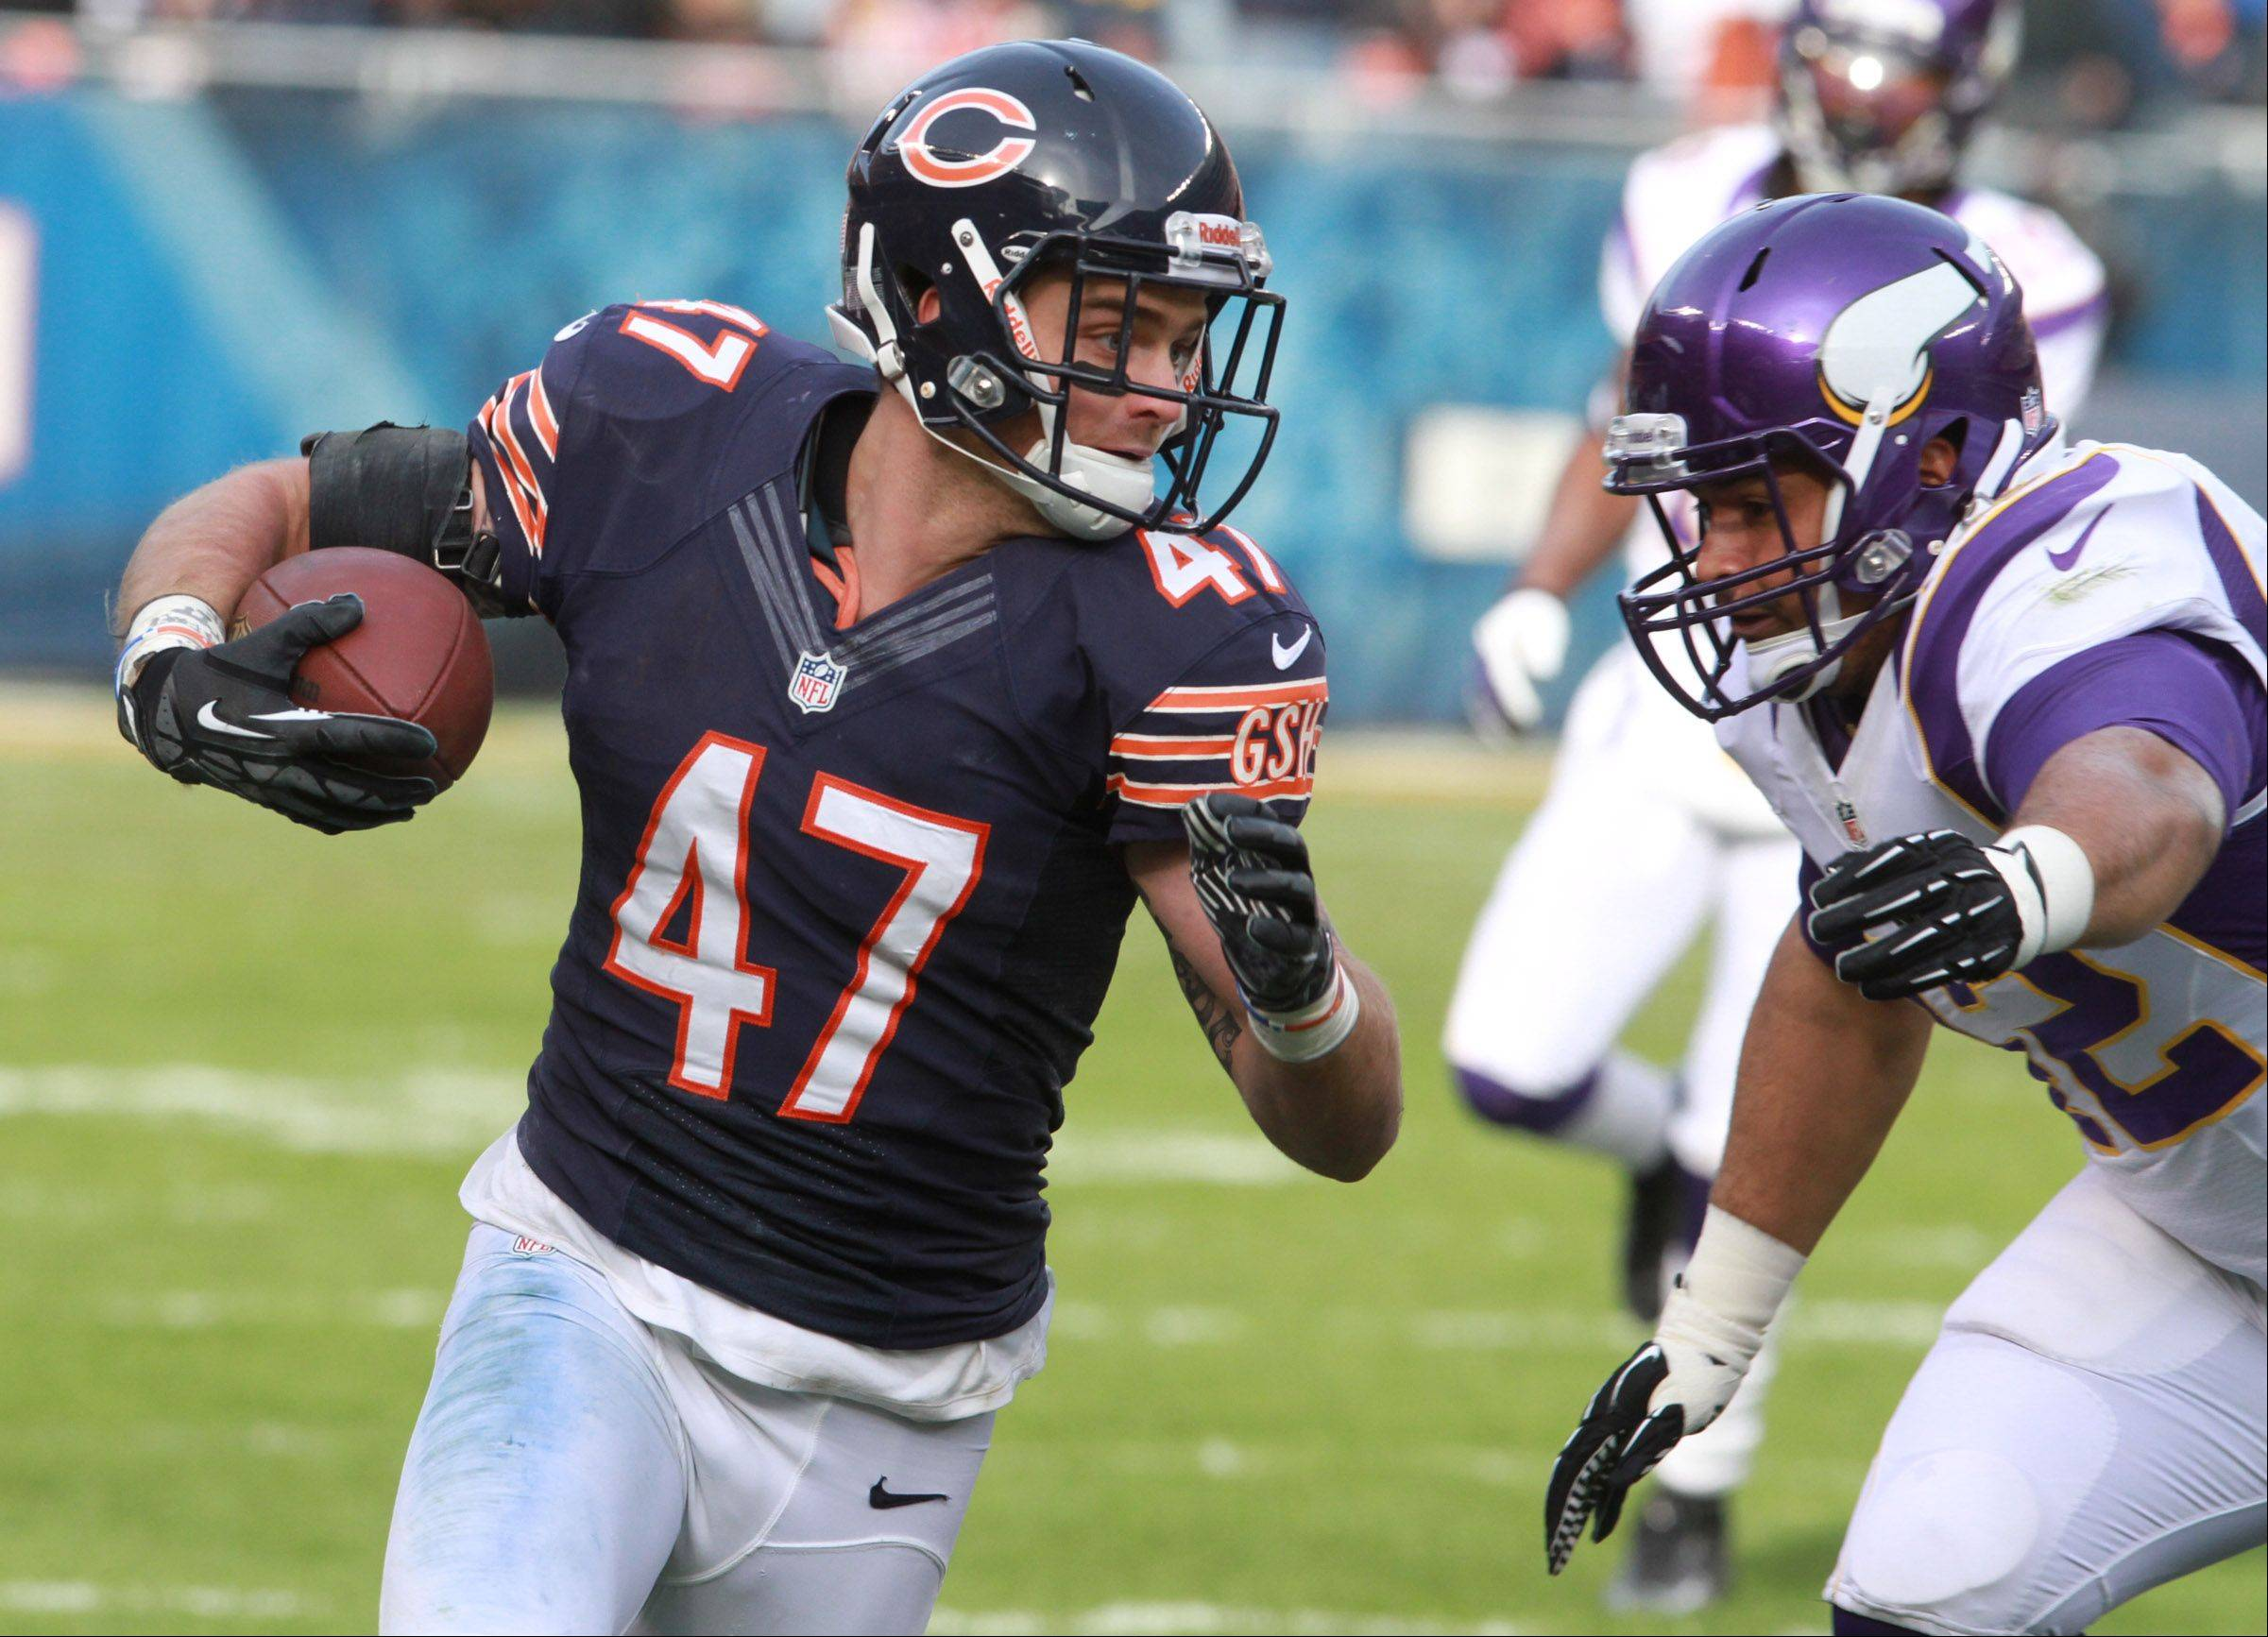 Chicago Bears free safety Chris Conte runs past Minnesota Vikings fullback Jerome Felton after intercepting a pass at Soldier Field Sunday.